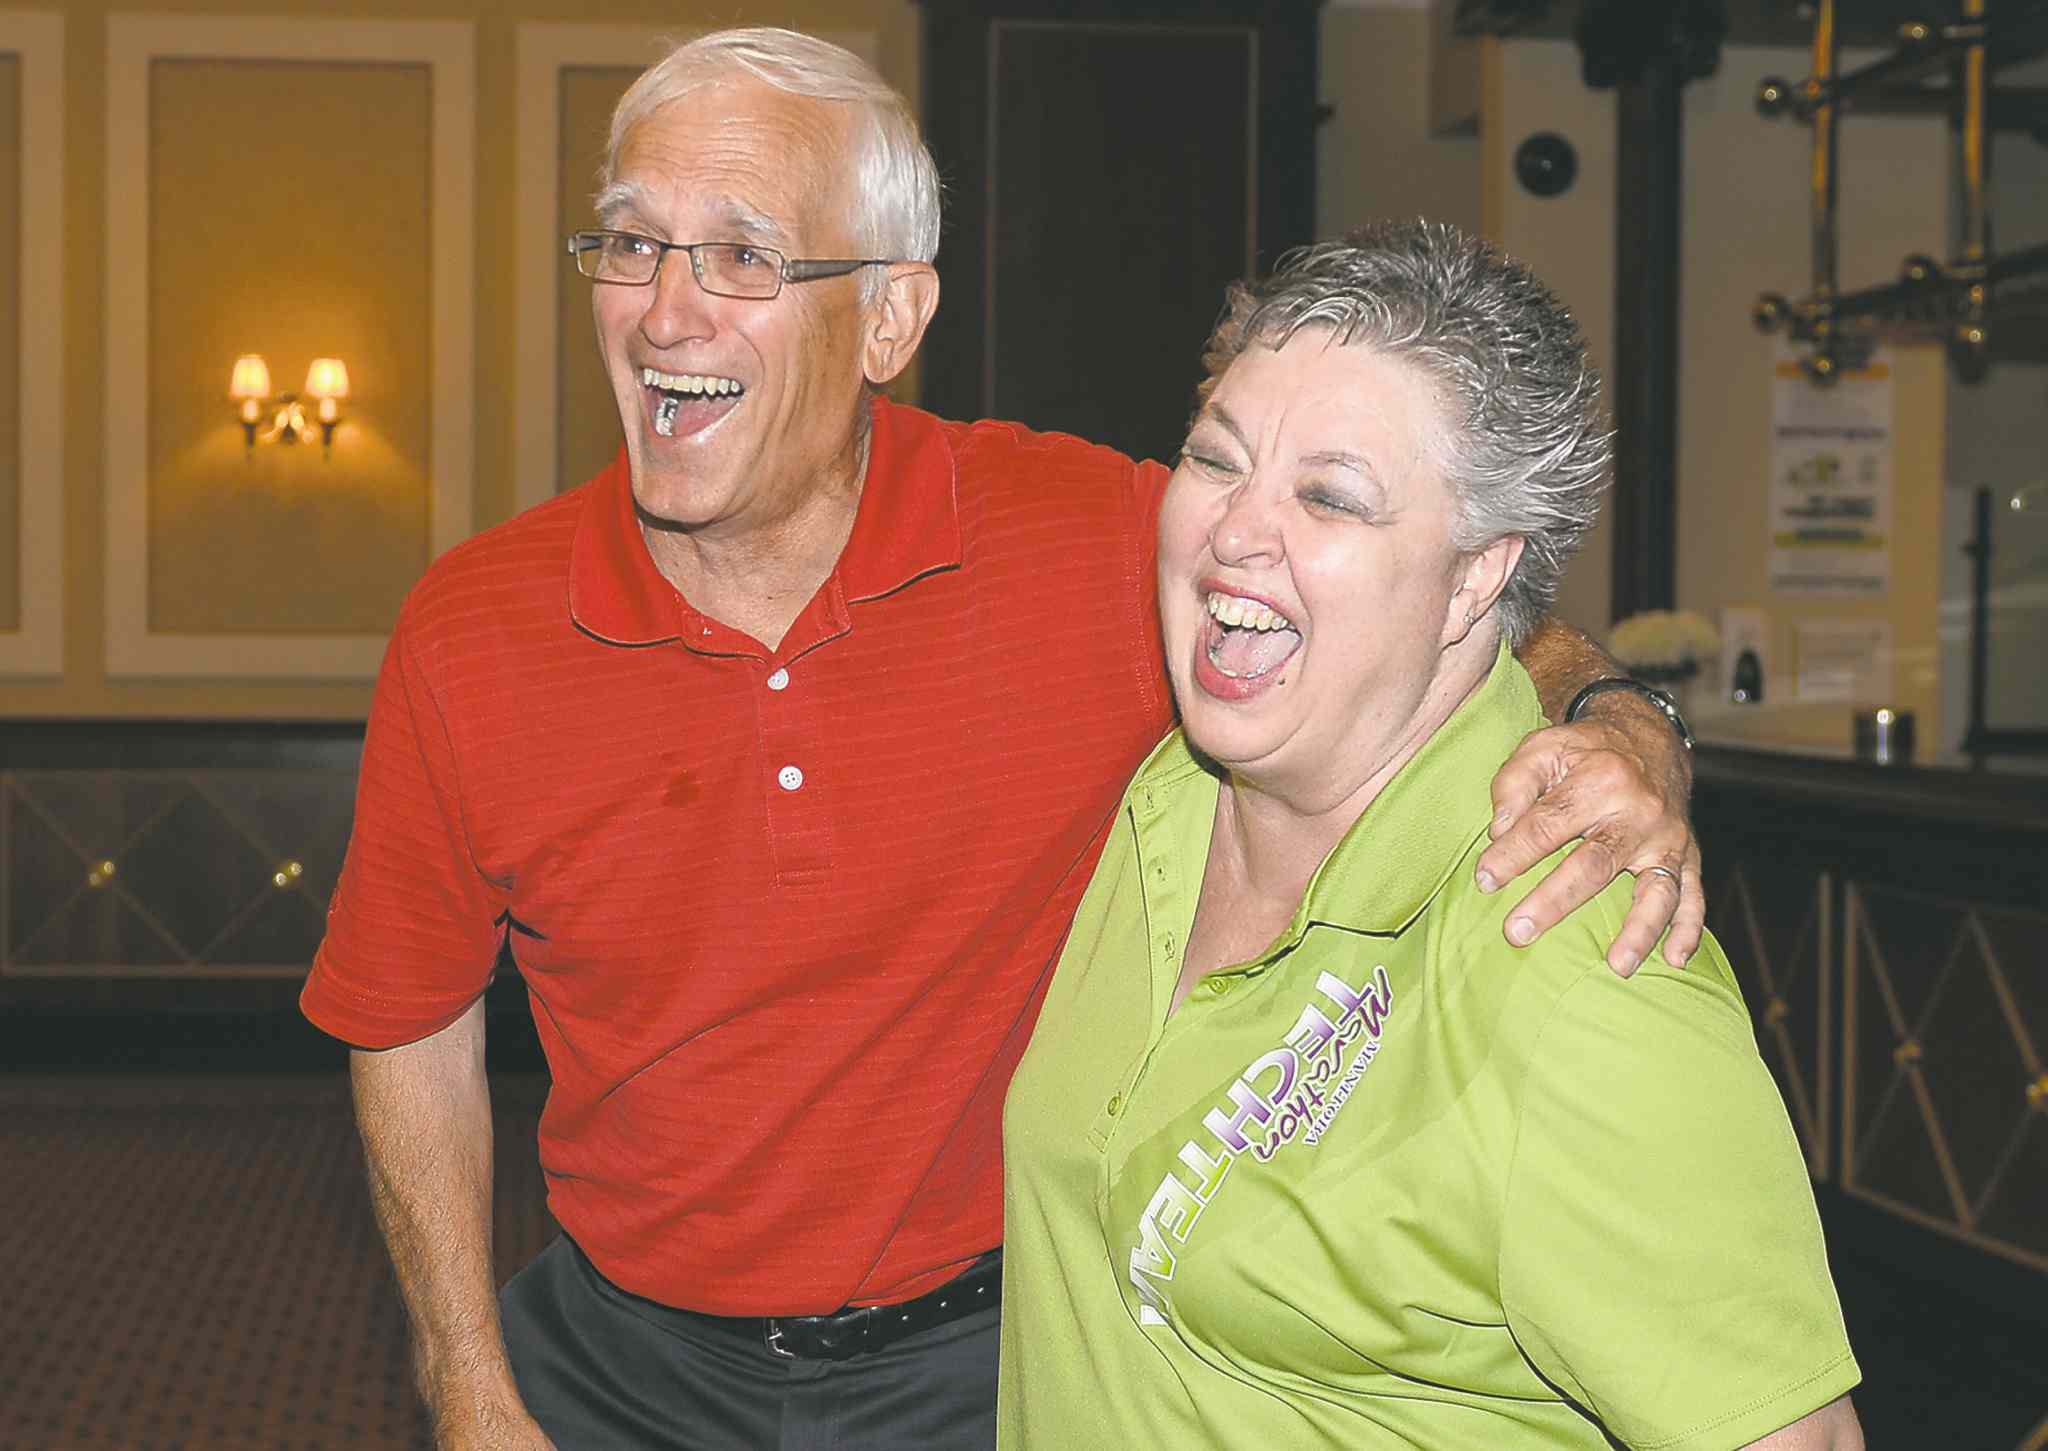 Dale Kendel and Shirley Lumb share a laugh at the Manitoba Marathon luncheon on Friday. Kendel is one of the marathon�s co-founders and Lumb has been the race�s executive director for 22 years.